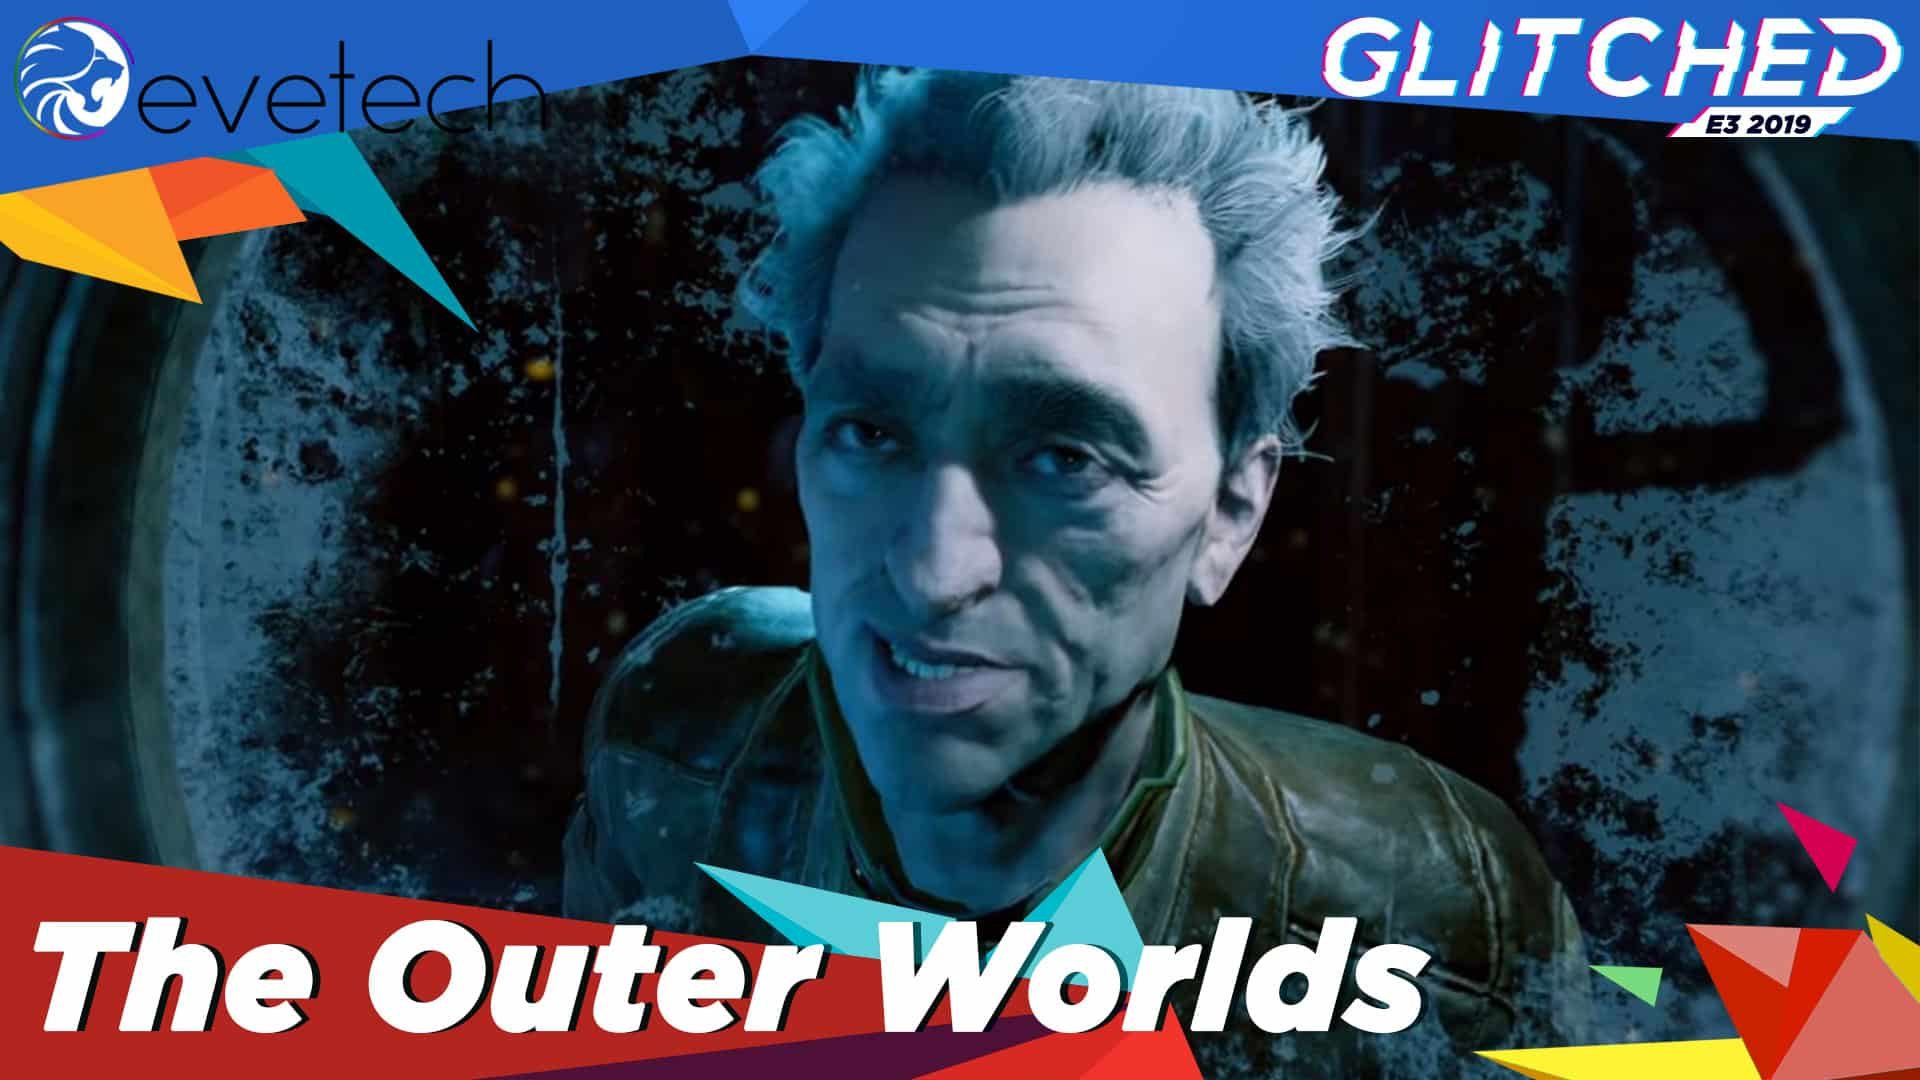 The Outer Worlds Release Date and New Trailer Revealed